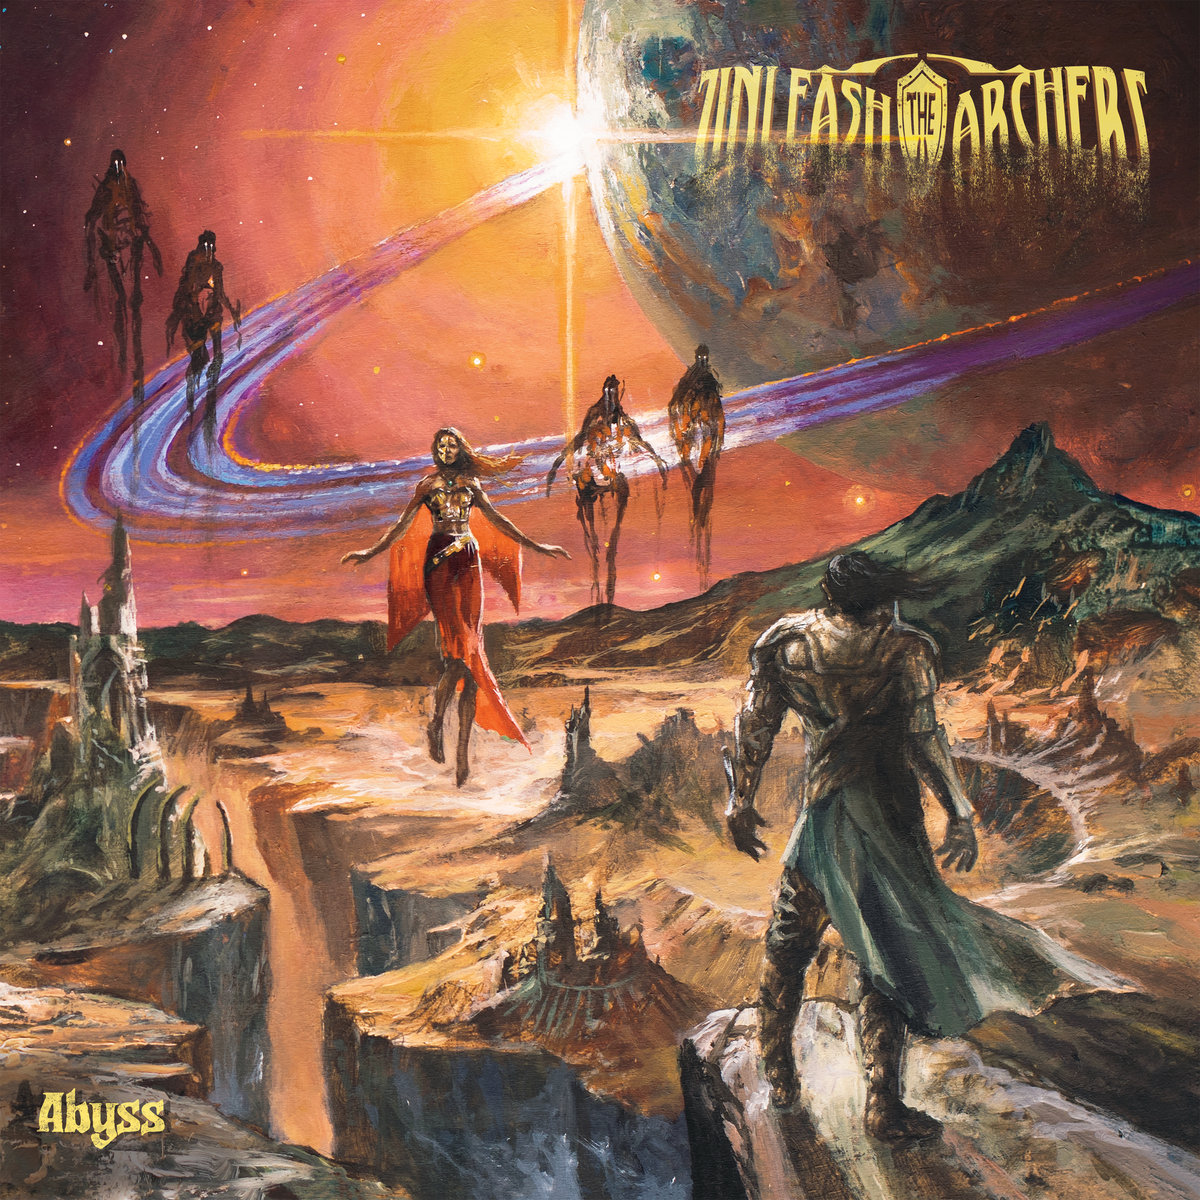 Unleash the Archers: Abyss